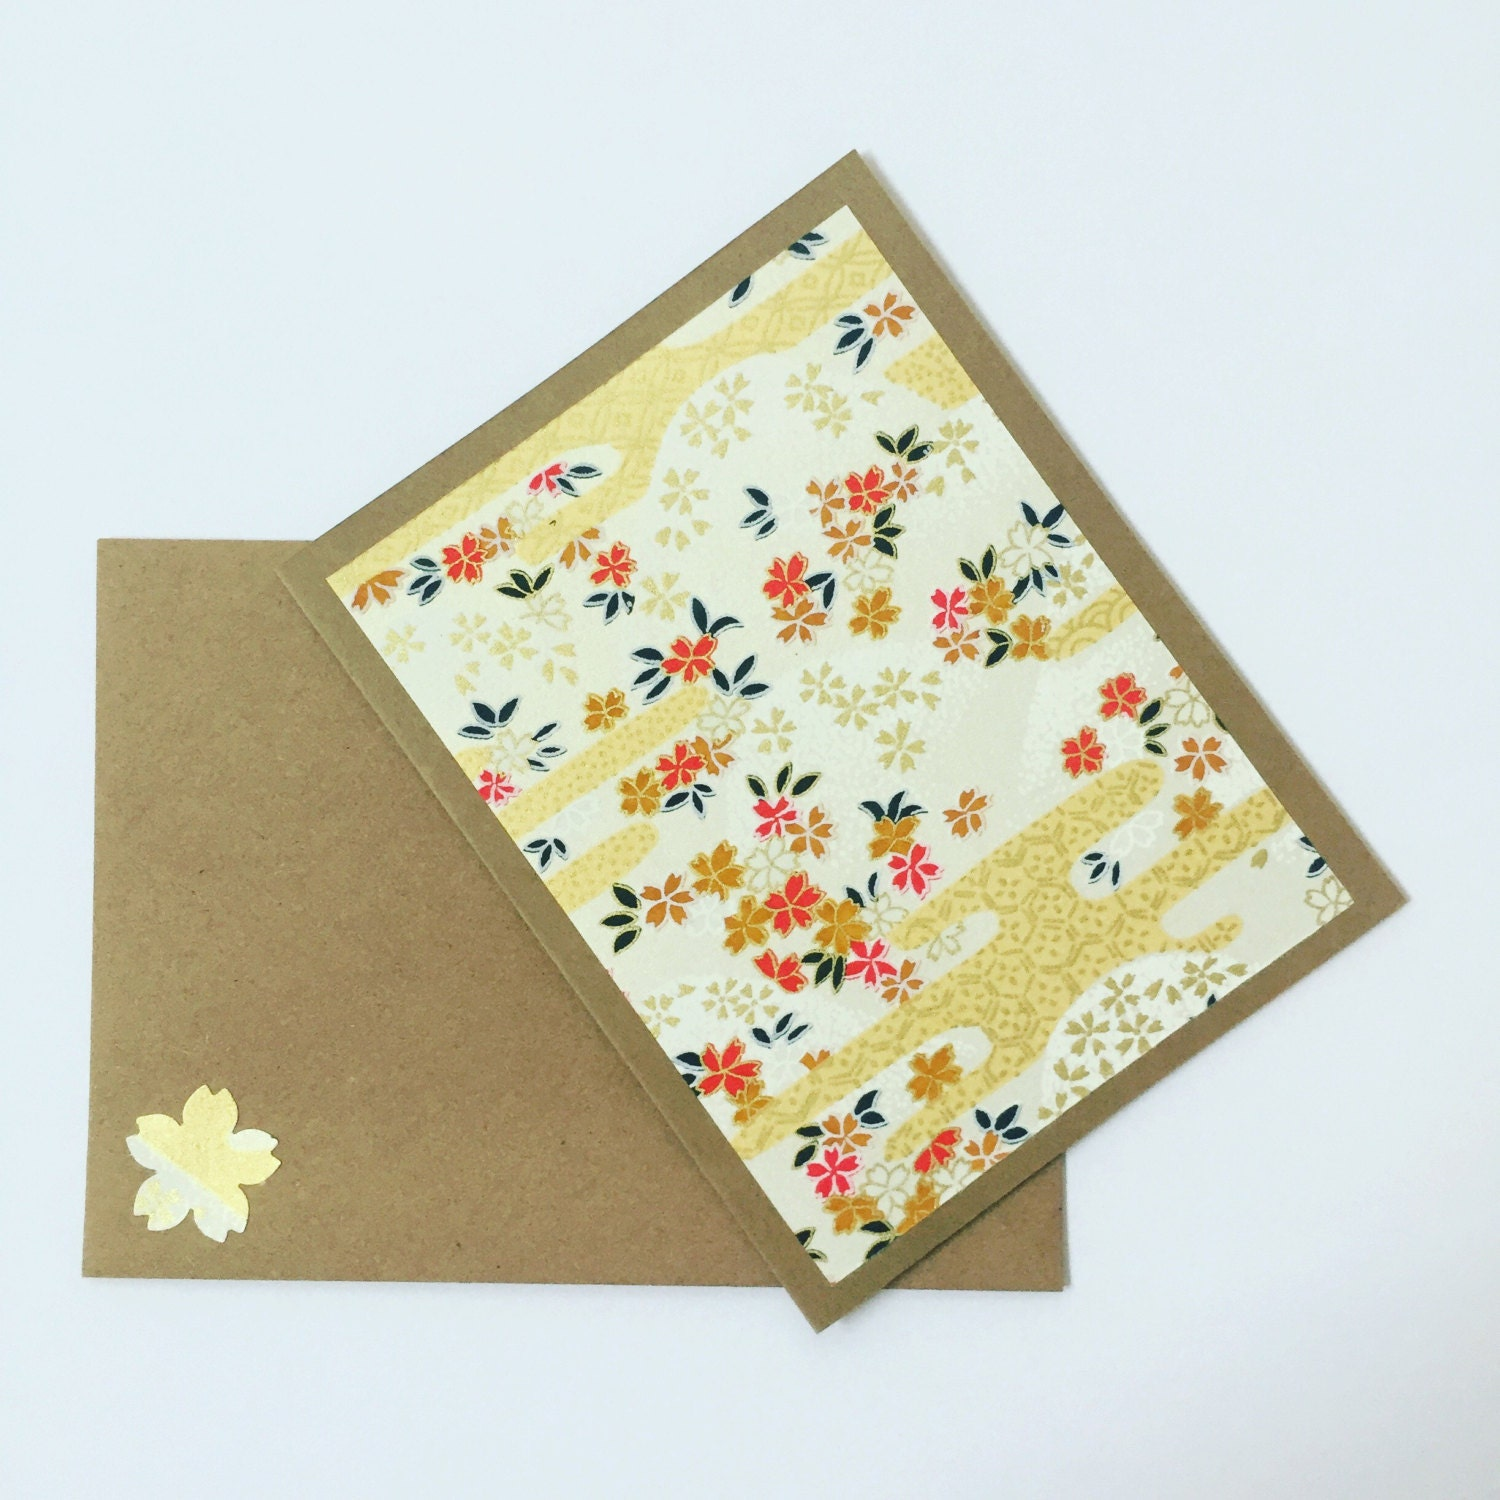 Gold blossoms note cards craft card stock paper craft for Craft paper card stock